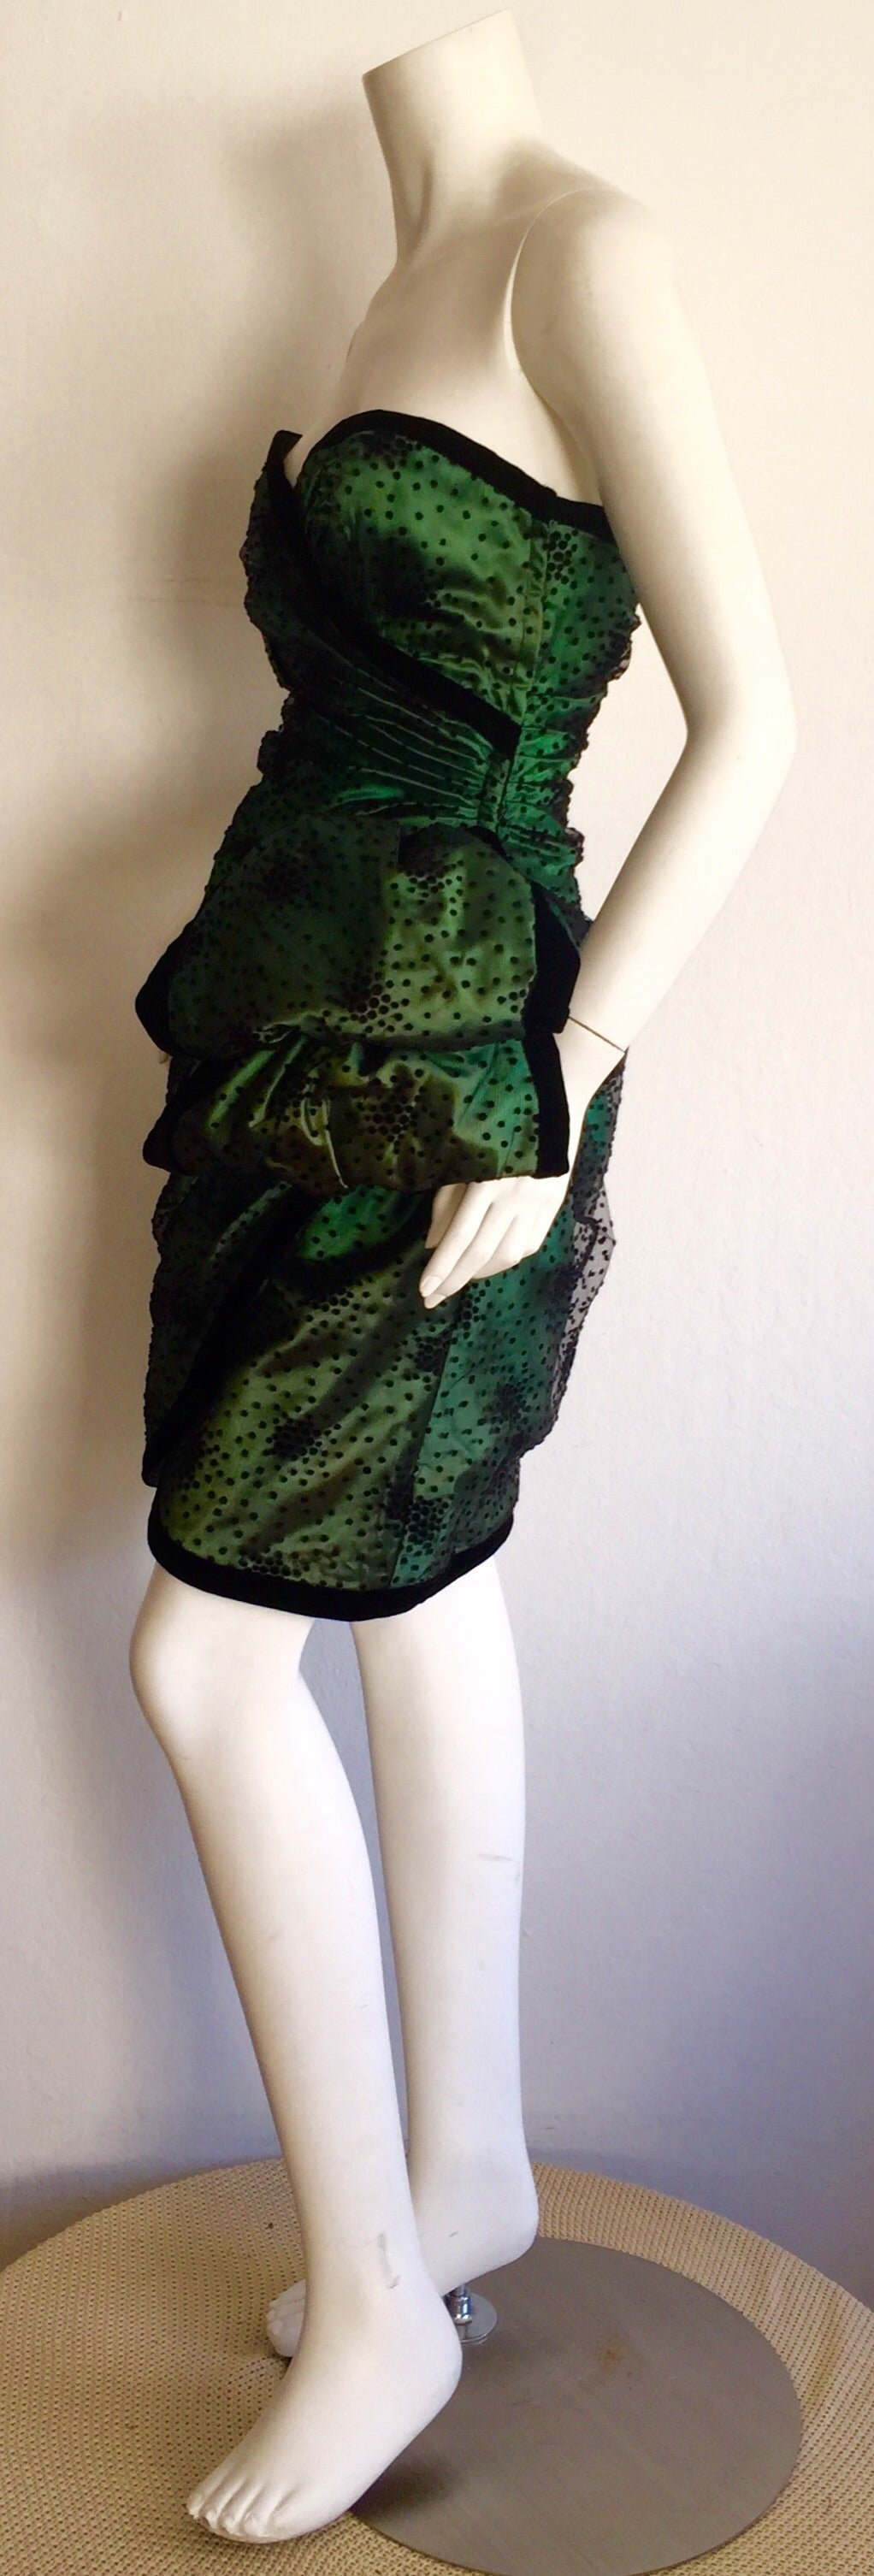 Incredible Vintage Victor Costa Bergdorf Goodman Green + Black Bow Dress 5